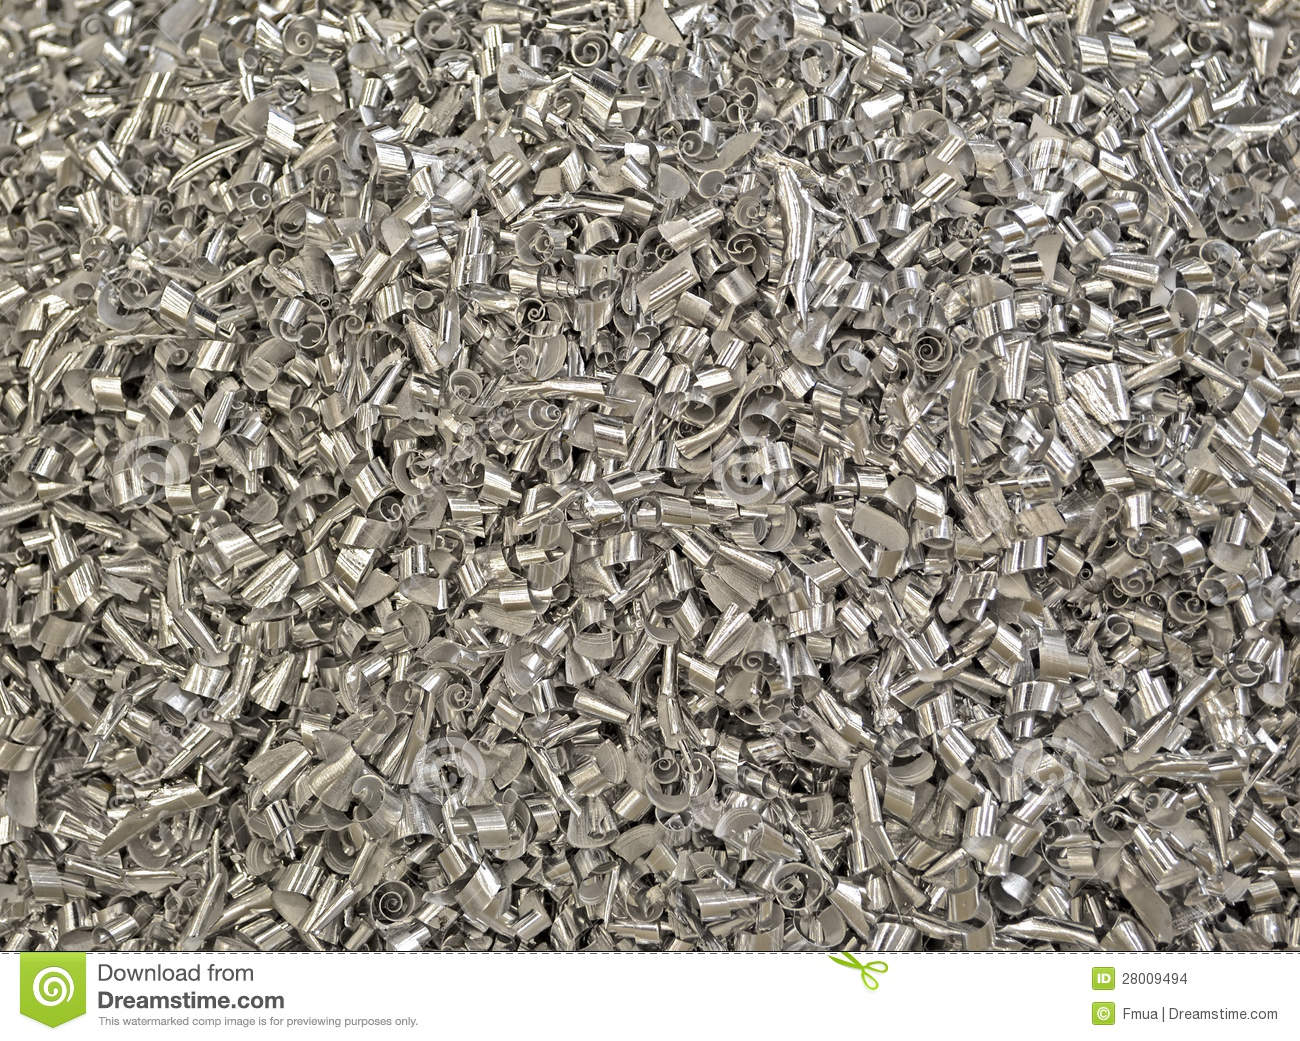 Focus On Center  Abstract Metal Garbage Heap Industrial Dust Details